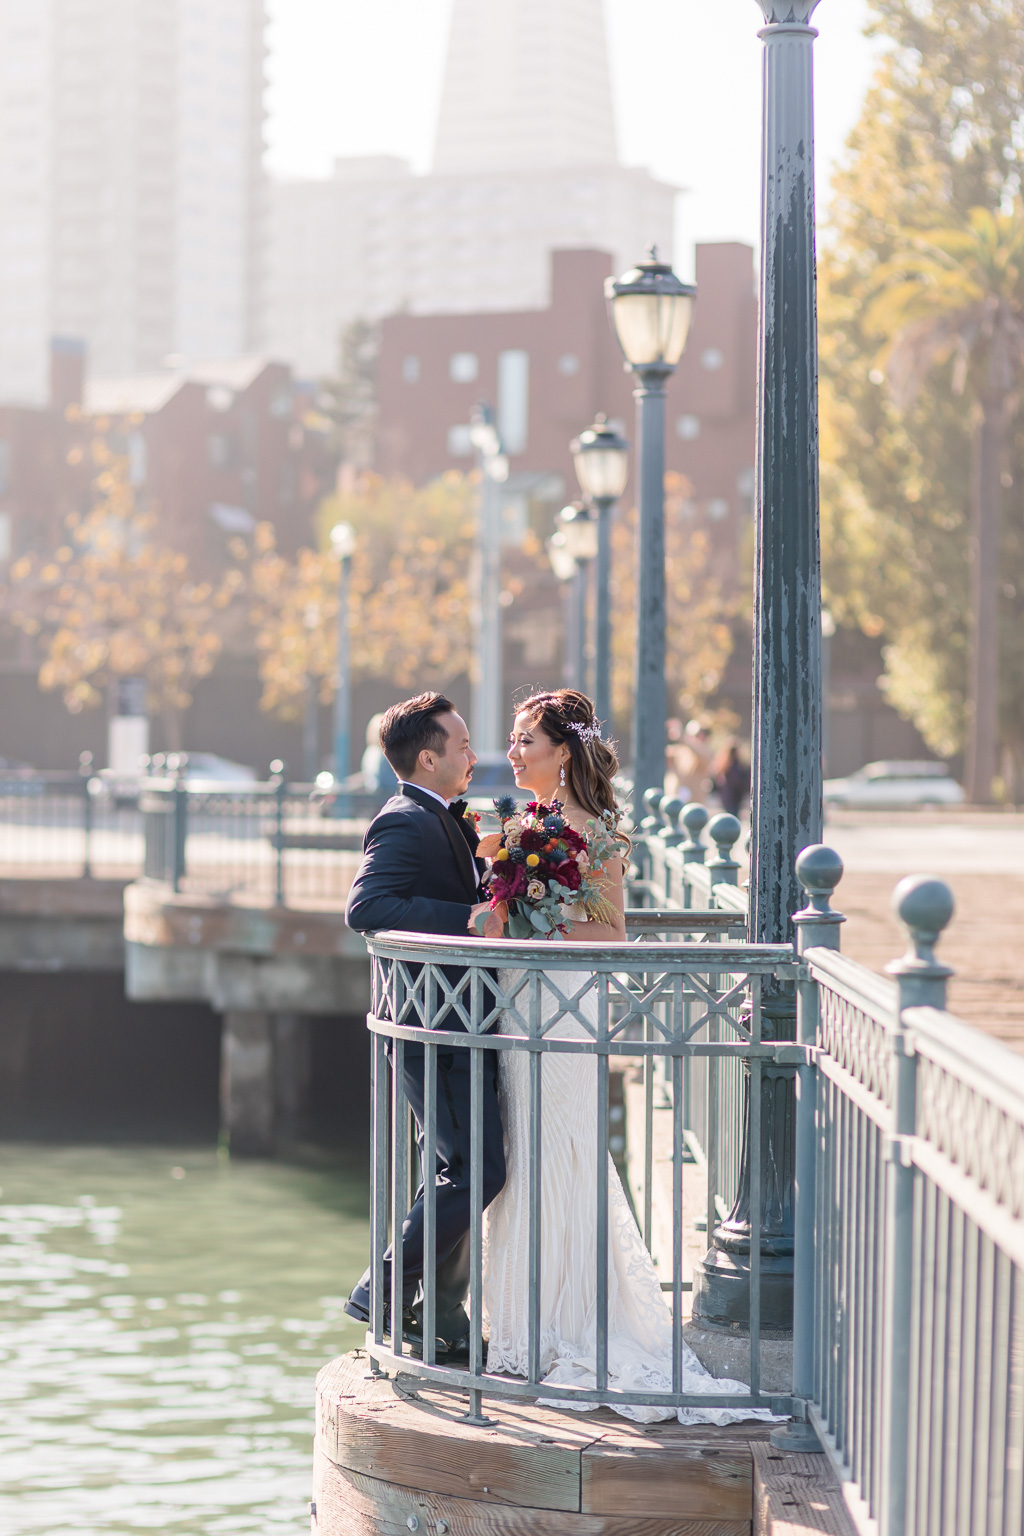 Embarcadero Pier 7 wedding bride and groom portrait